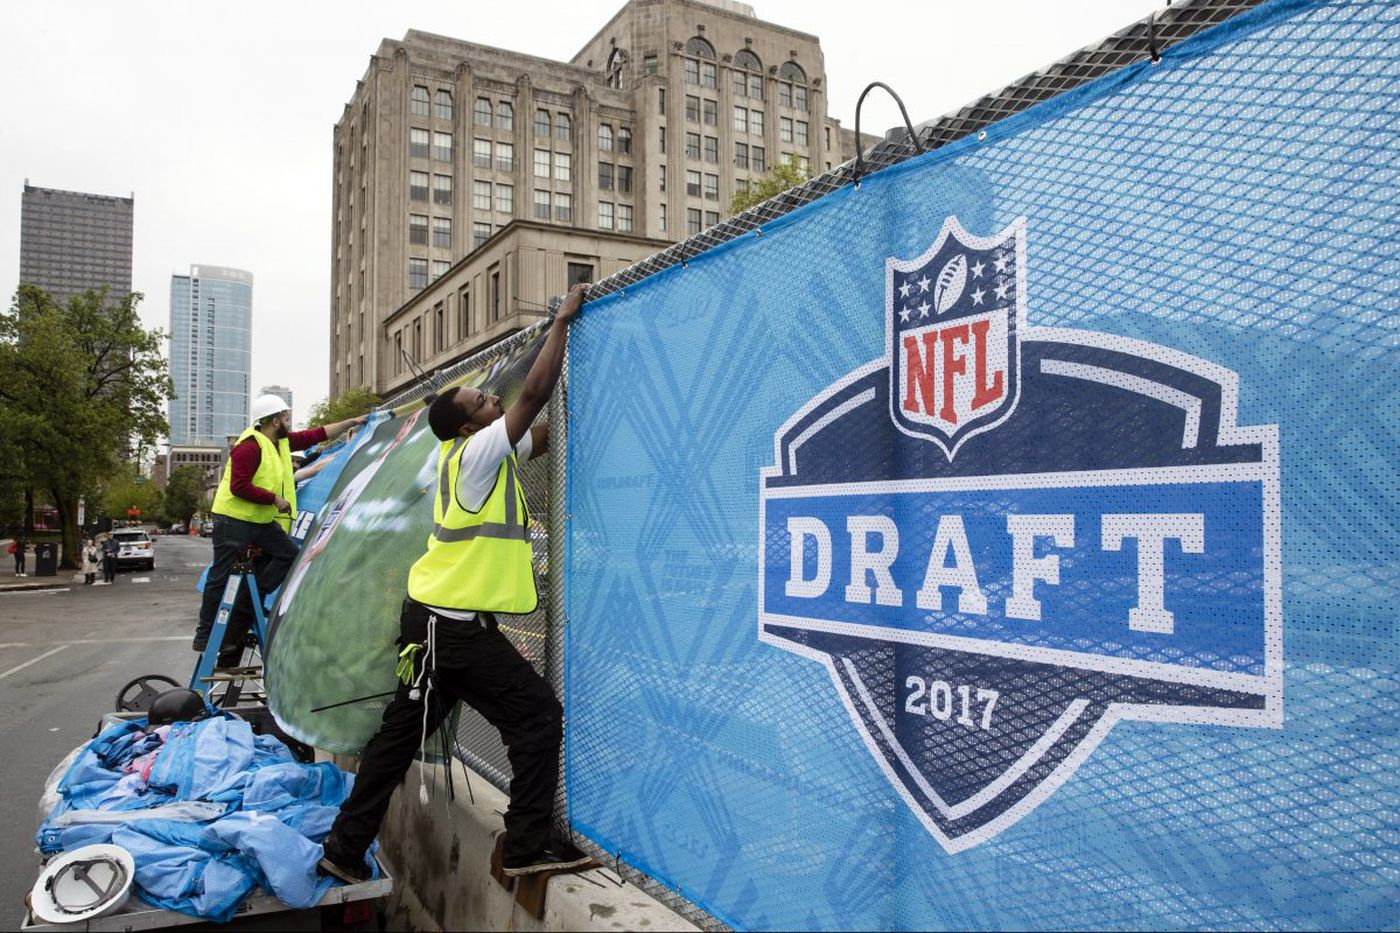 NFL draft in Philly attracted 250,000 visitors and generated $94.9M in economic impact